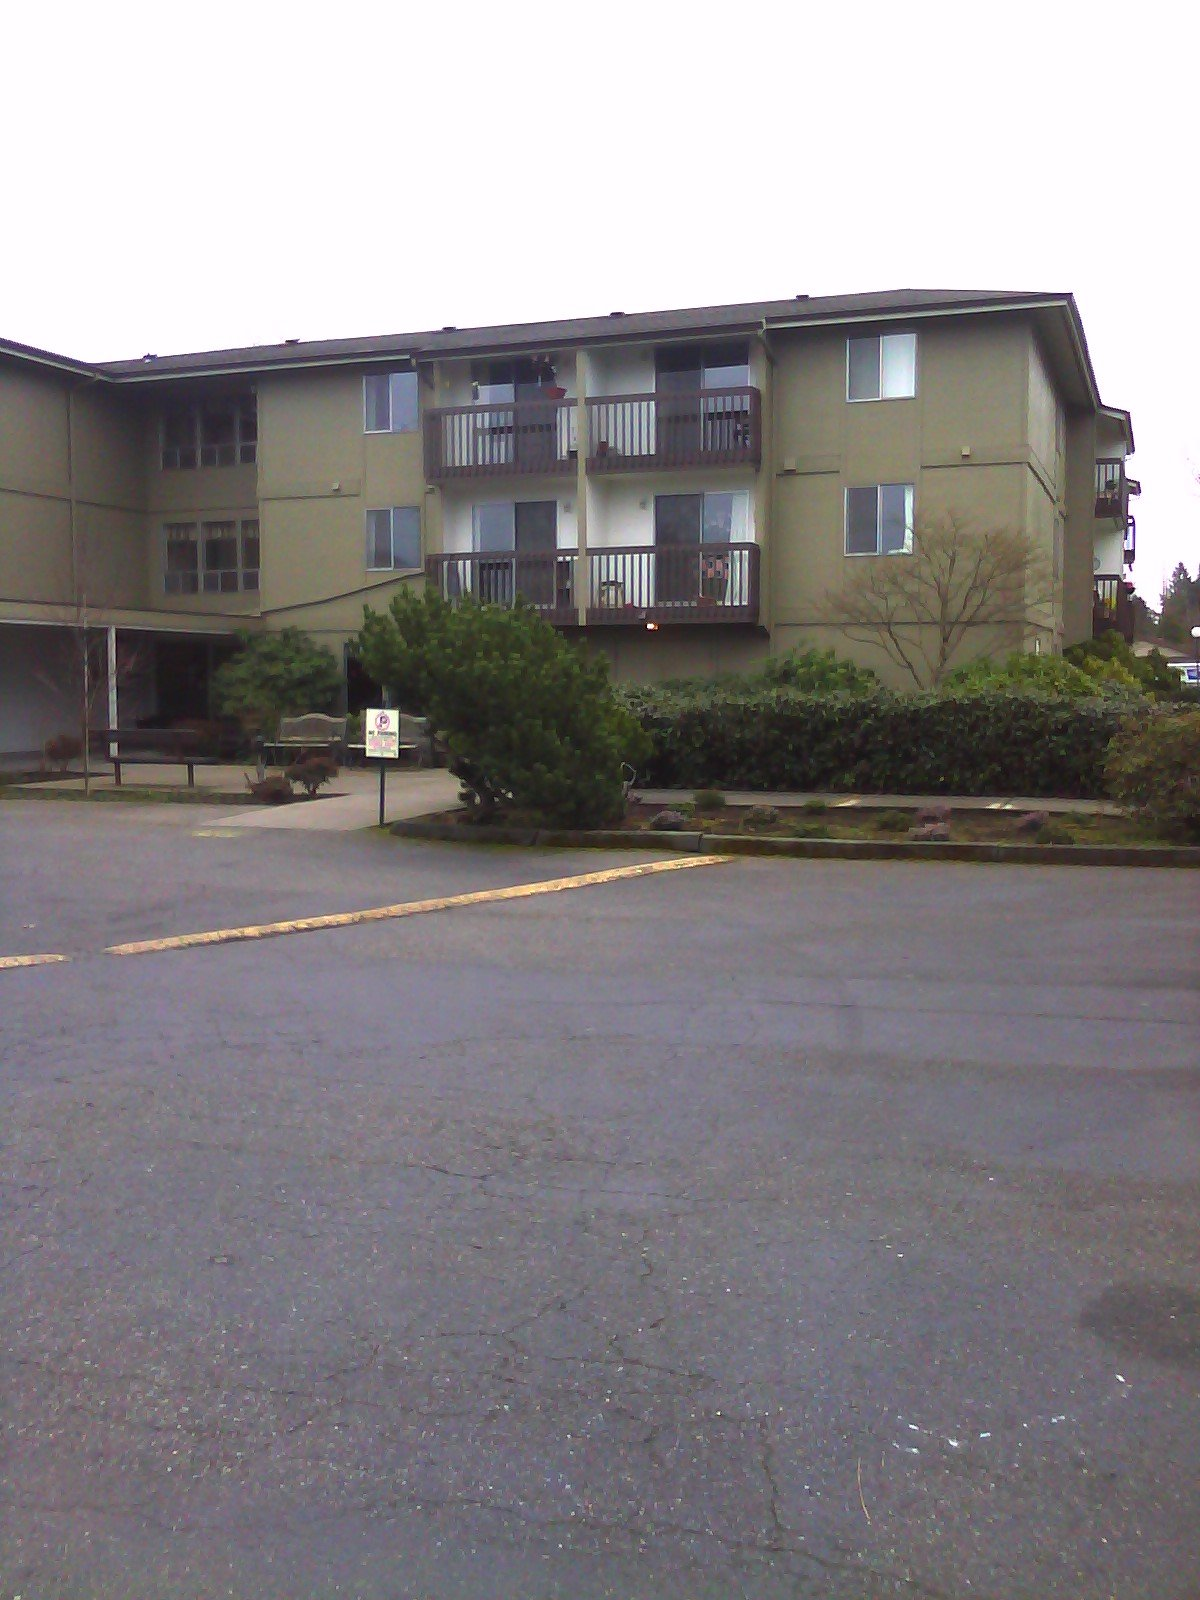 South Sound Villa Apartments